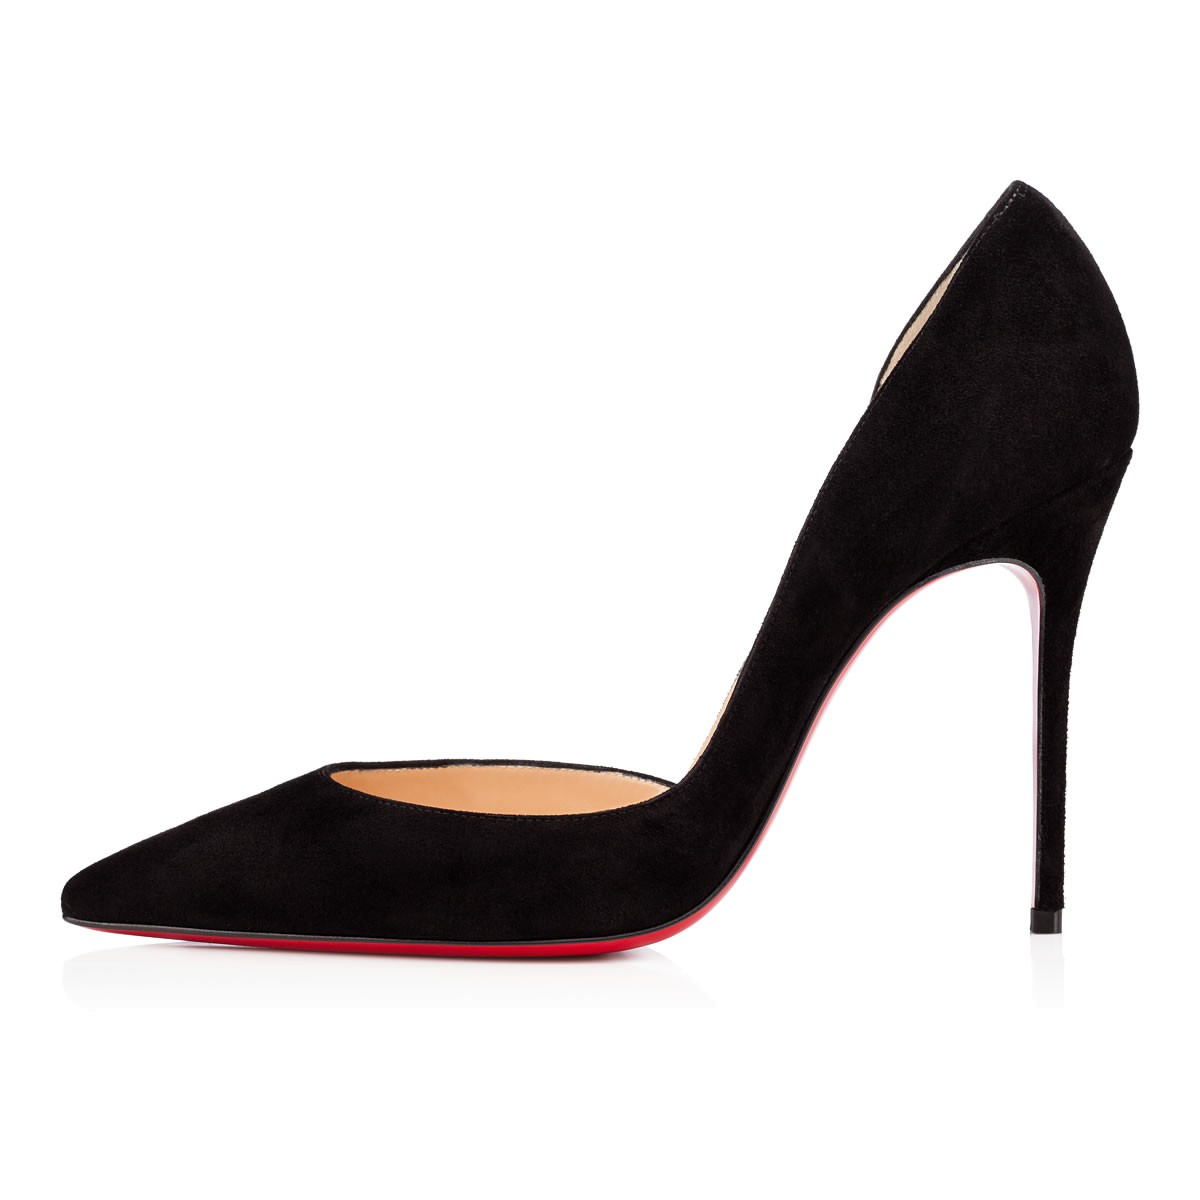 dca592d3a824 Shoes - Iriza - Christian Louboutin Shoes - Iriza - Christian Louboutin ...